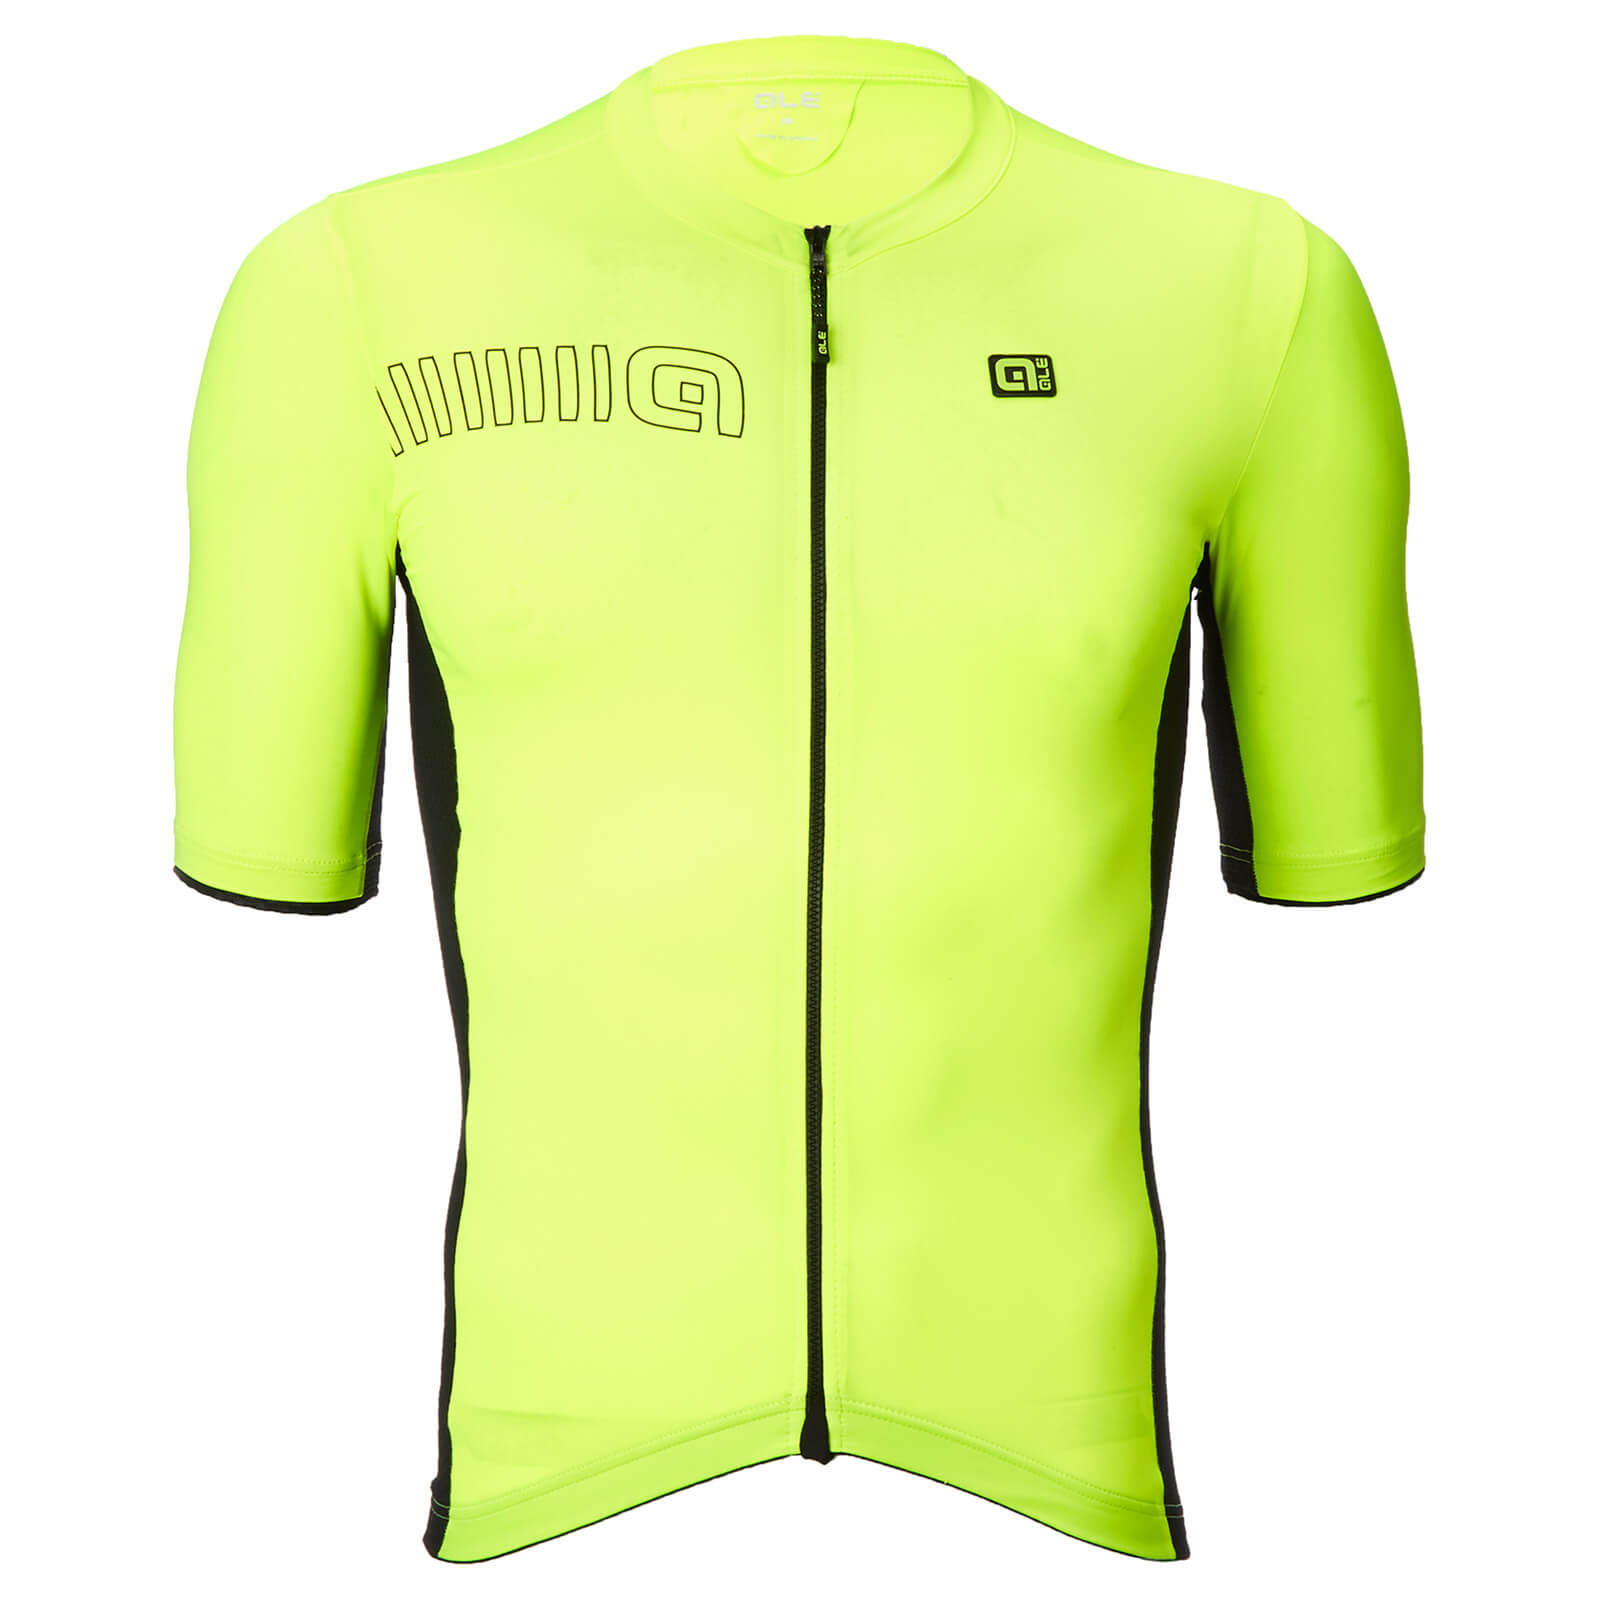 Alé Solid Block Jersey - XL - Black/Fluo Yellow